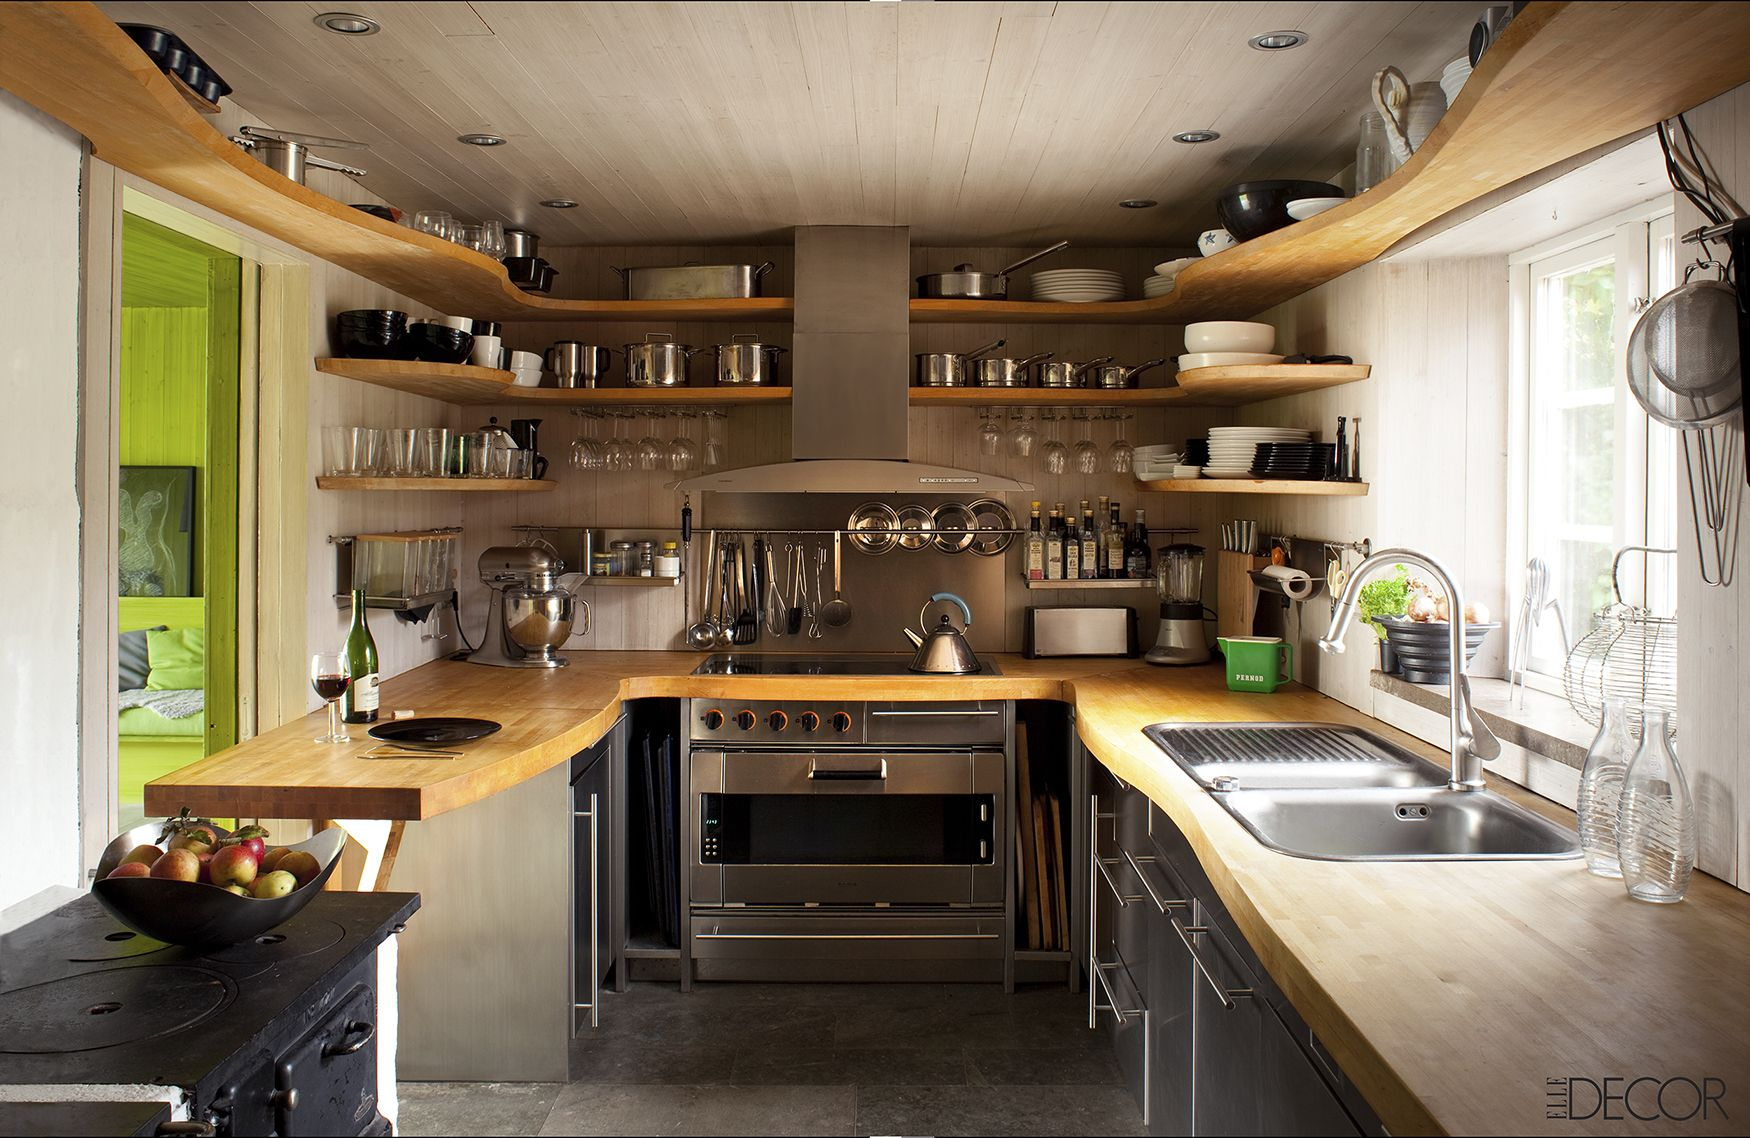 55 Small Kitchen Design Ideas - Decorating Tiny Kitchens